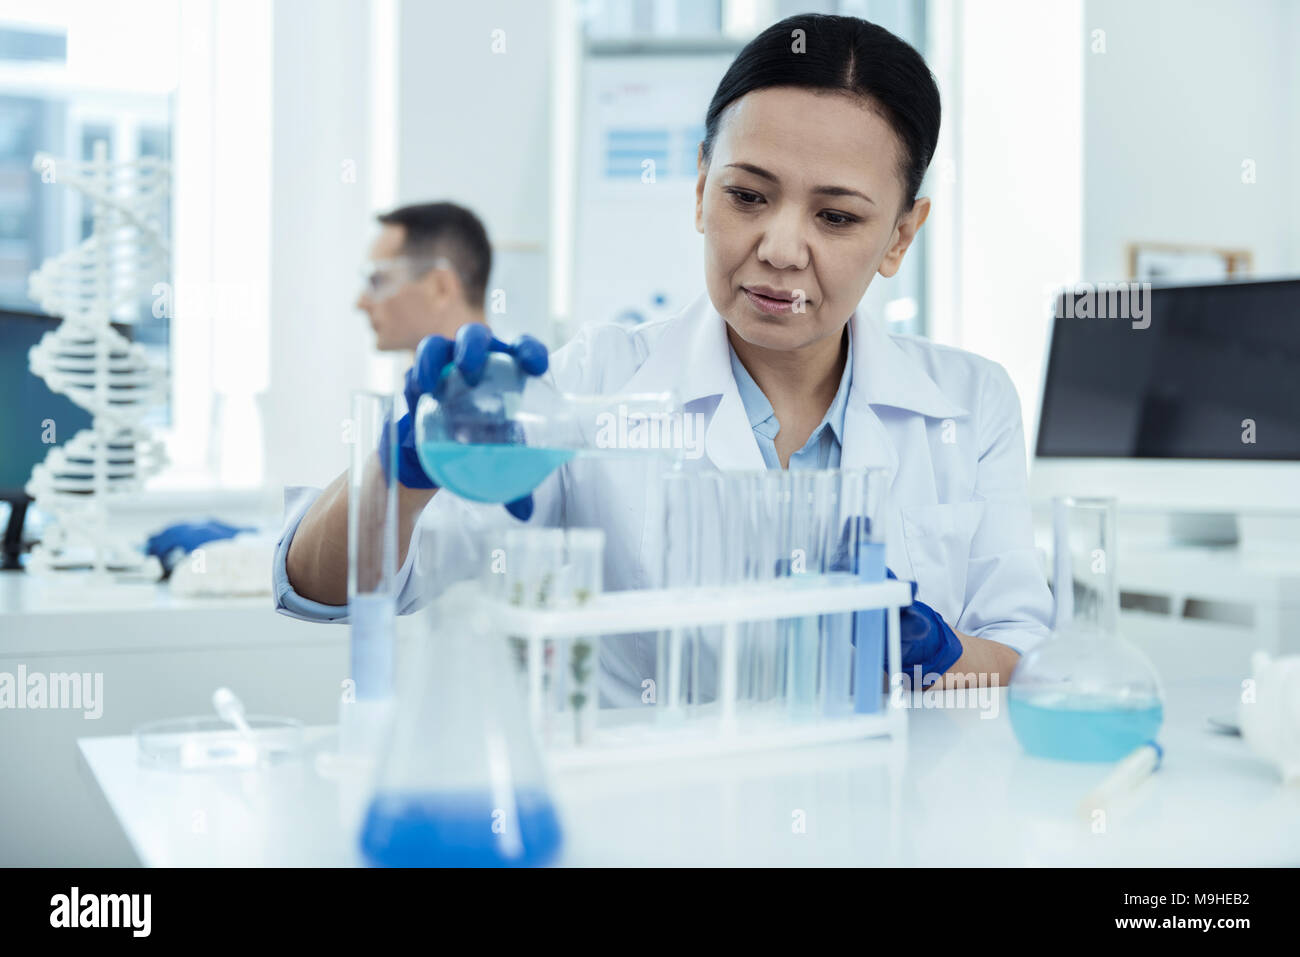 Serious scientist making an important experiment - Stock Image